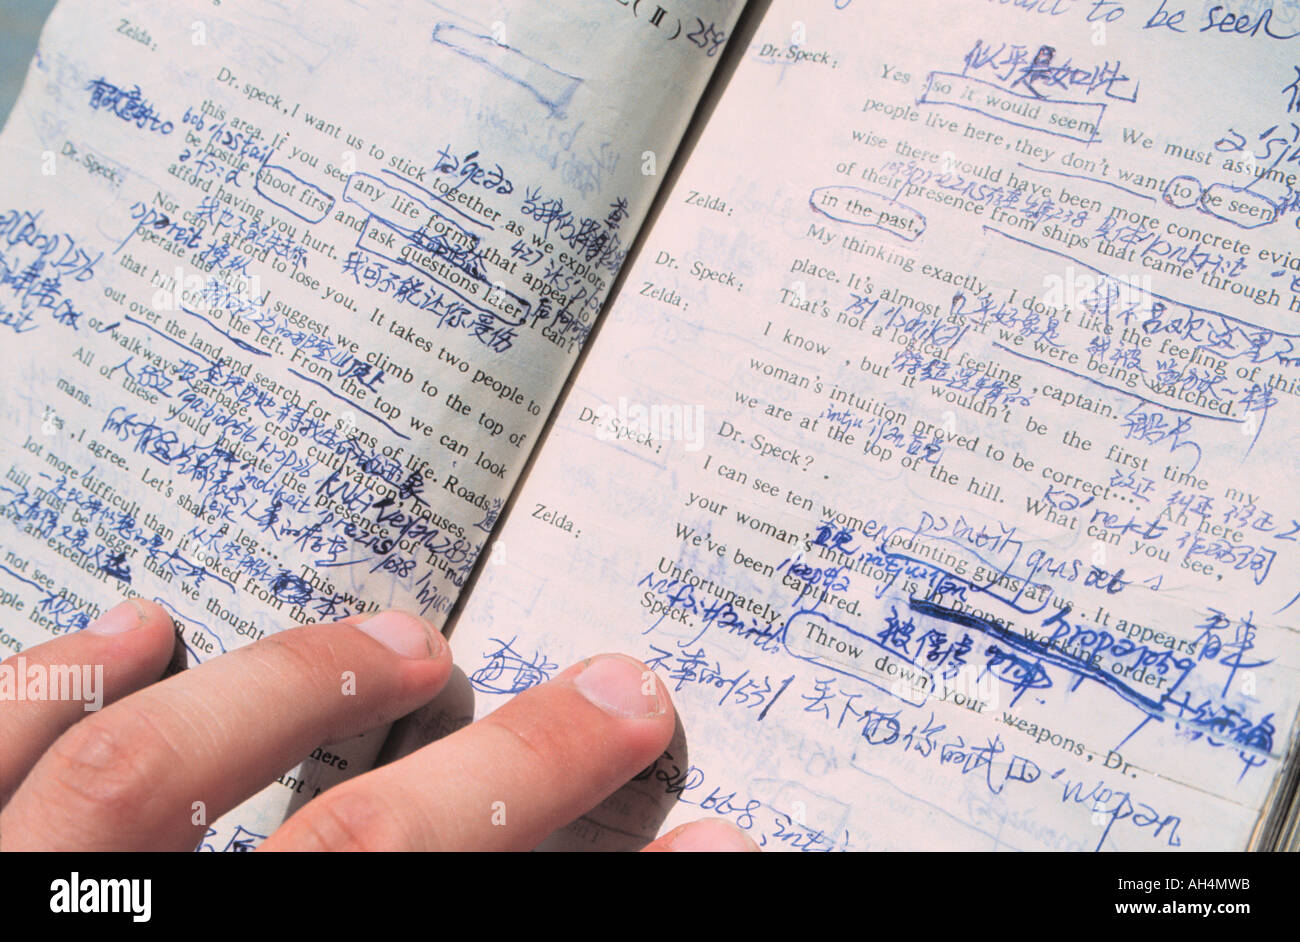 english school book with handwritten translation to chinese, China - Stock Image